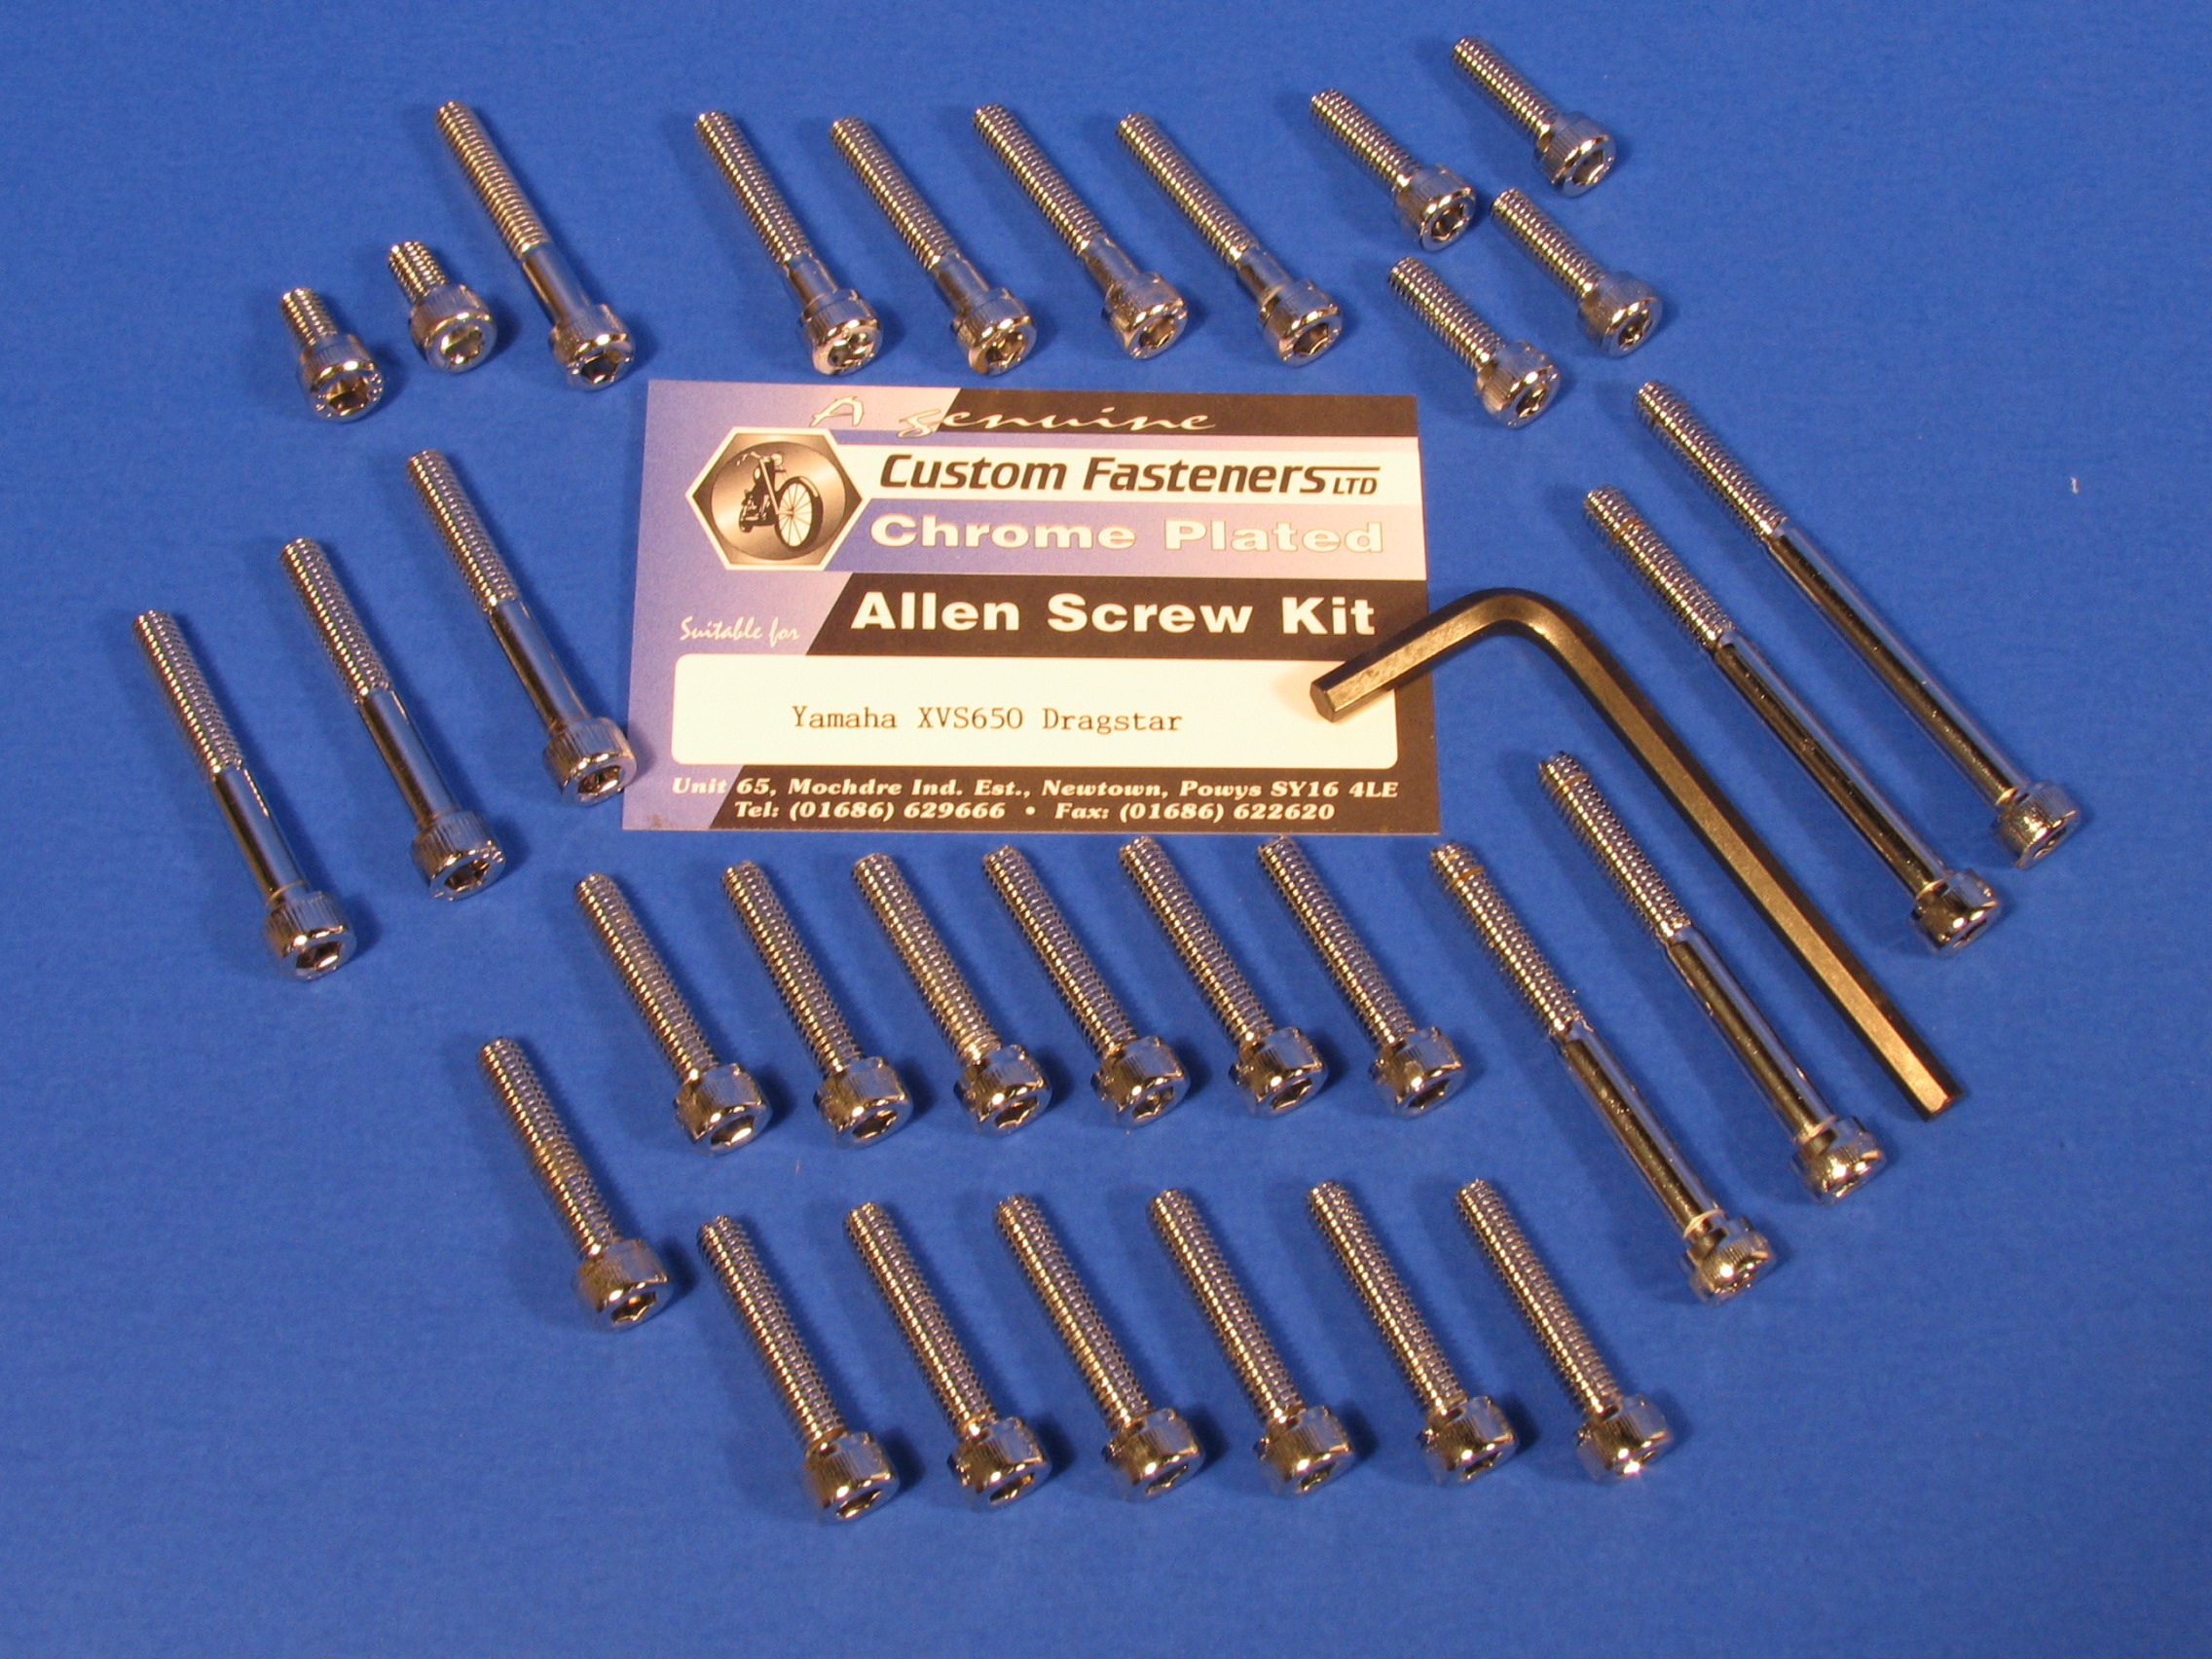 Suzuki Allen Screw Kits